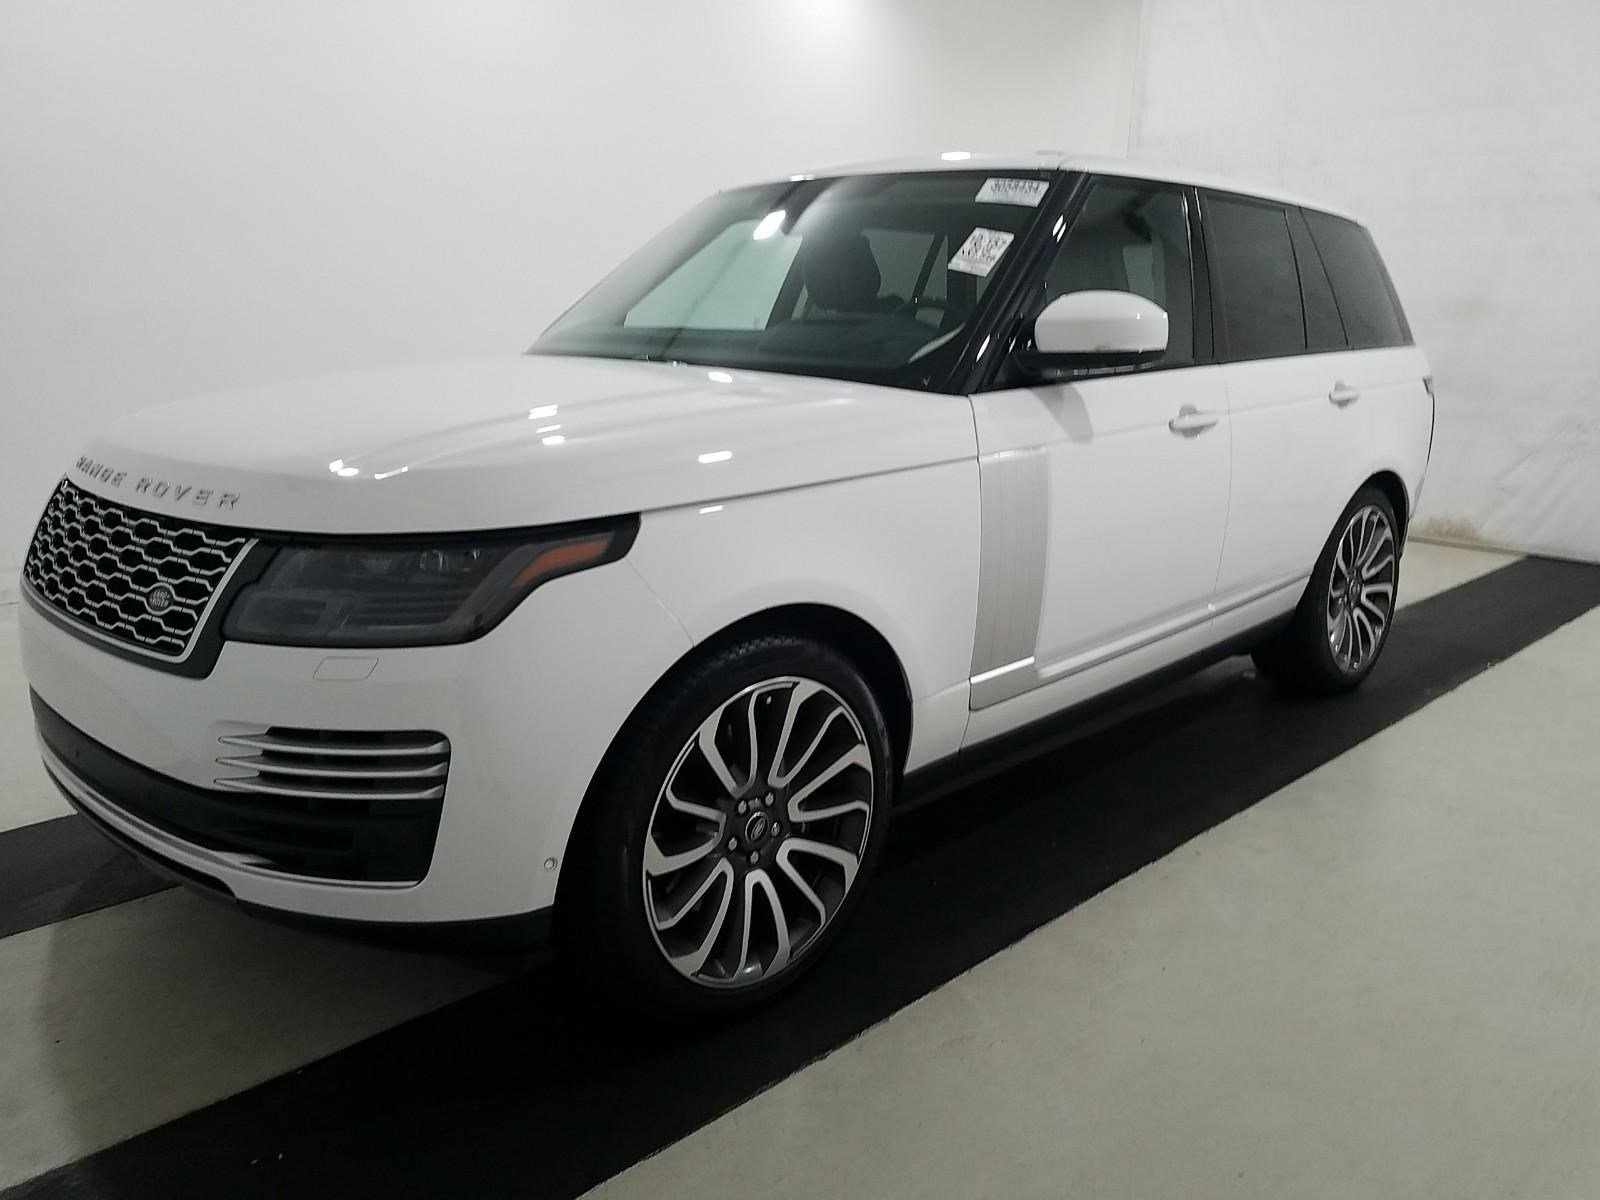 Pre Owned 2019 Land Rover Range Rover 5 0L V8 Supercharged Autobiography